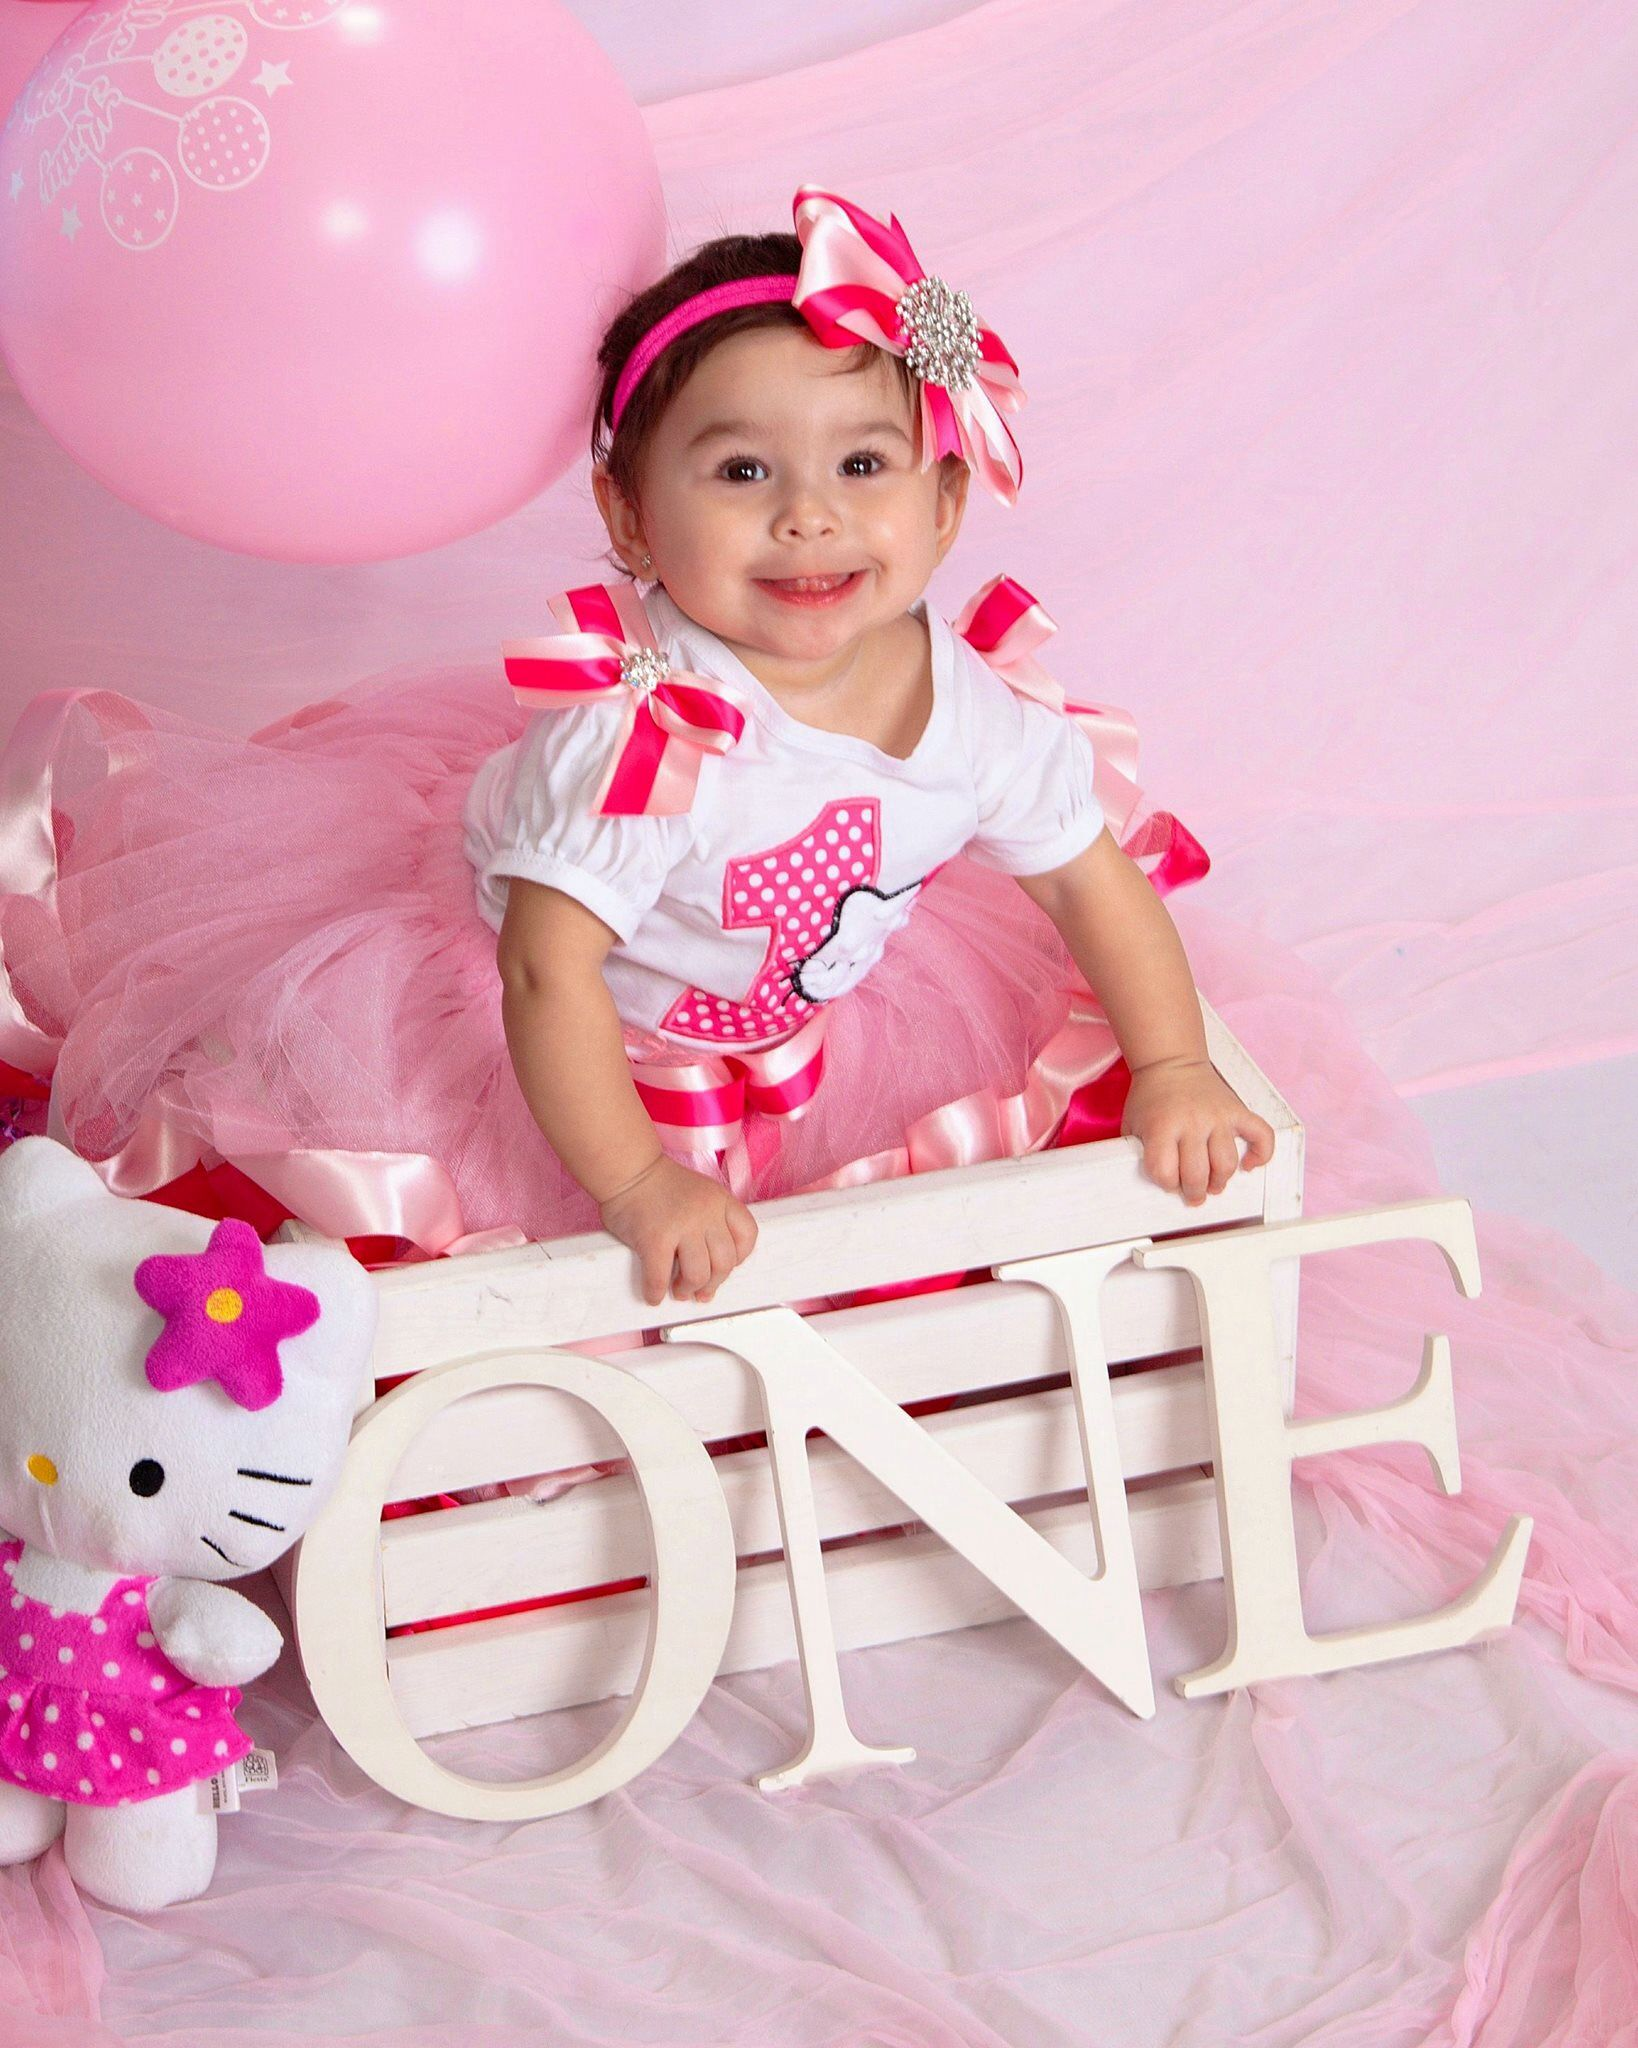 First Birthday Picture Hello Kitty Theme Hello Kitty Birthday Party Hello Kitty Theme Party Hello Kitty Baby